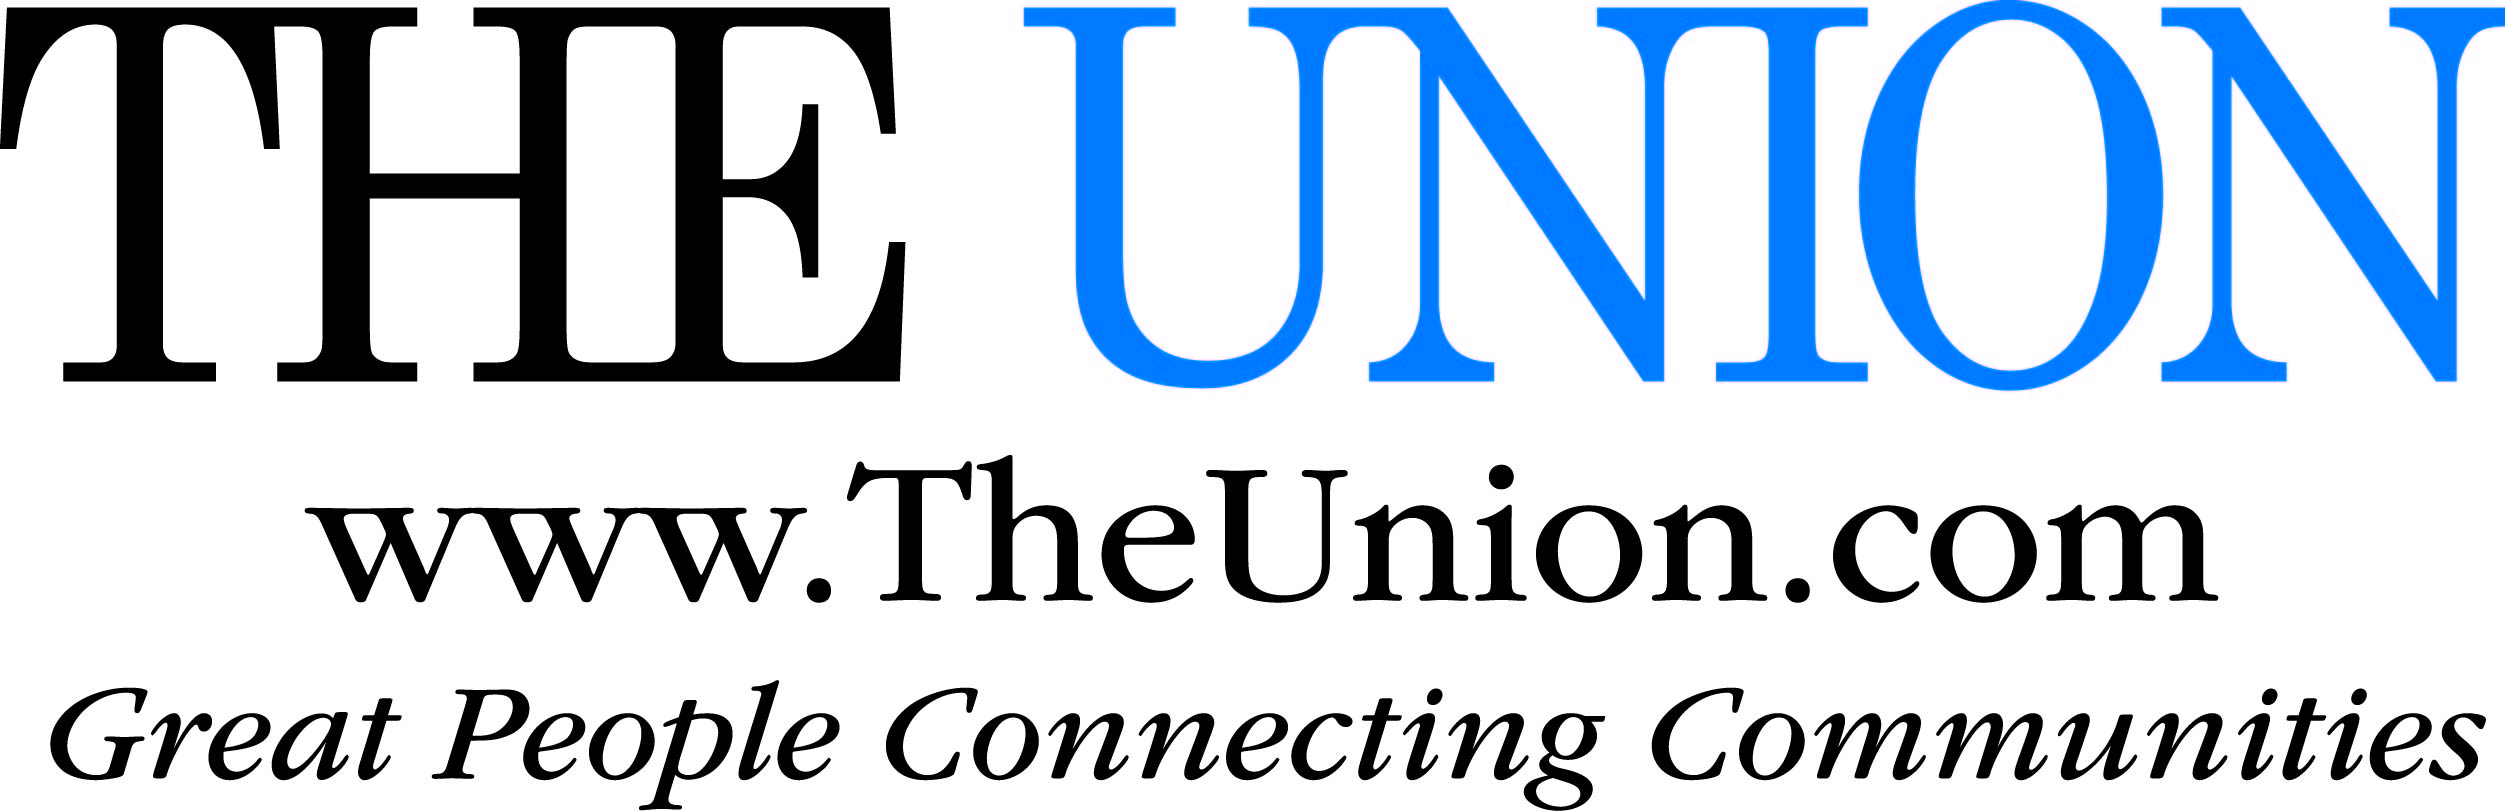 Union logo website great people 2014